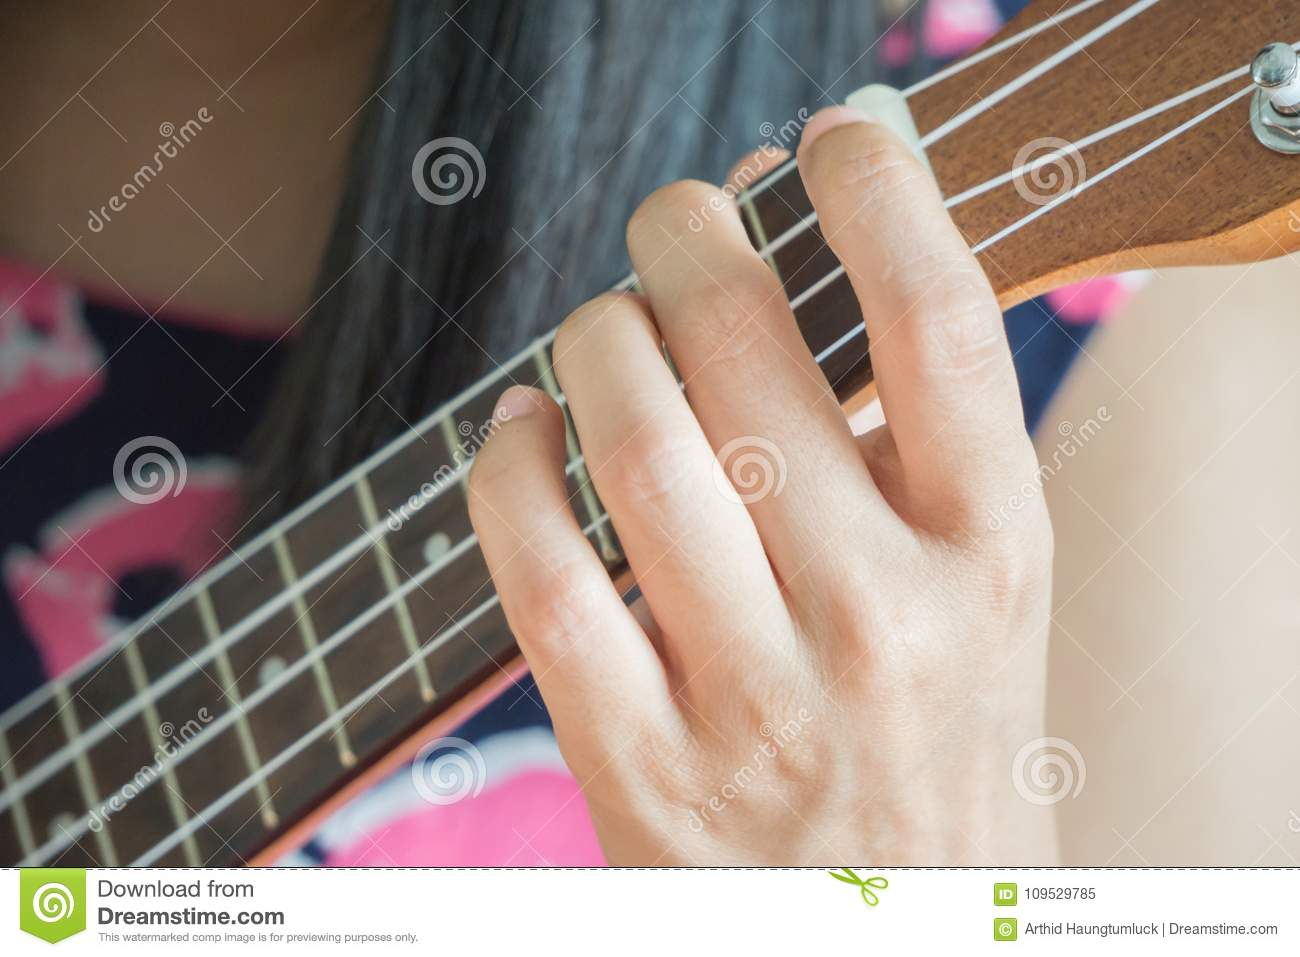 Hand playing guitar or Ukulele chord.